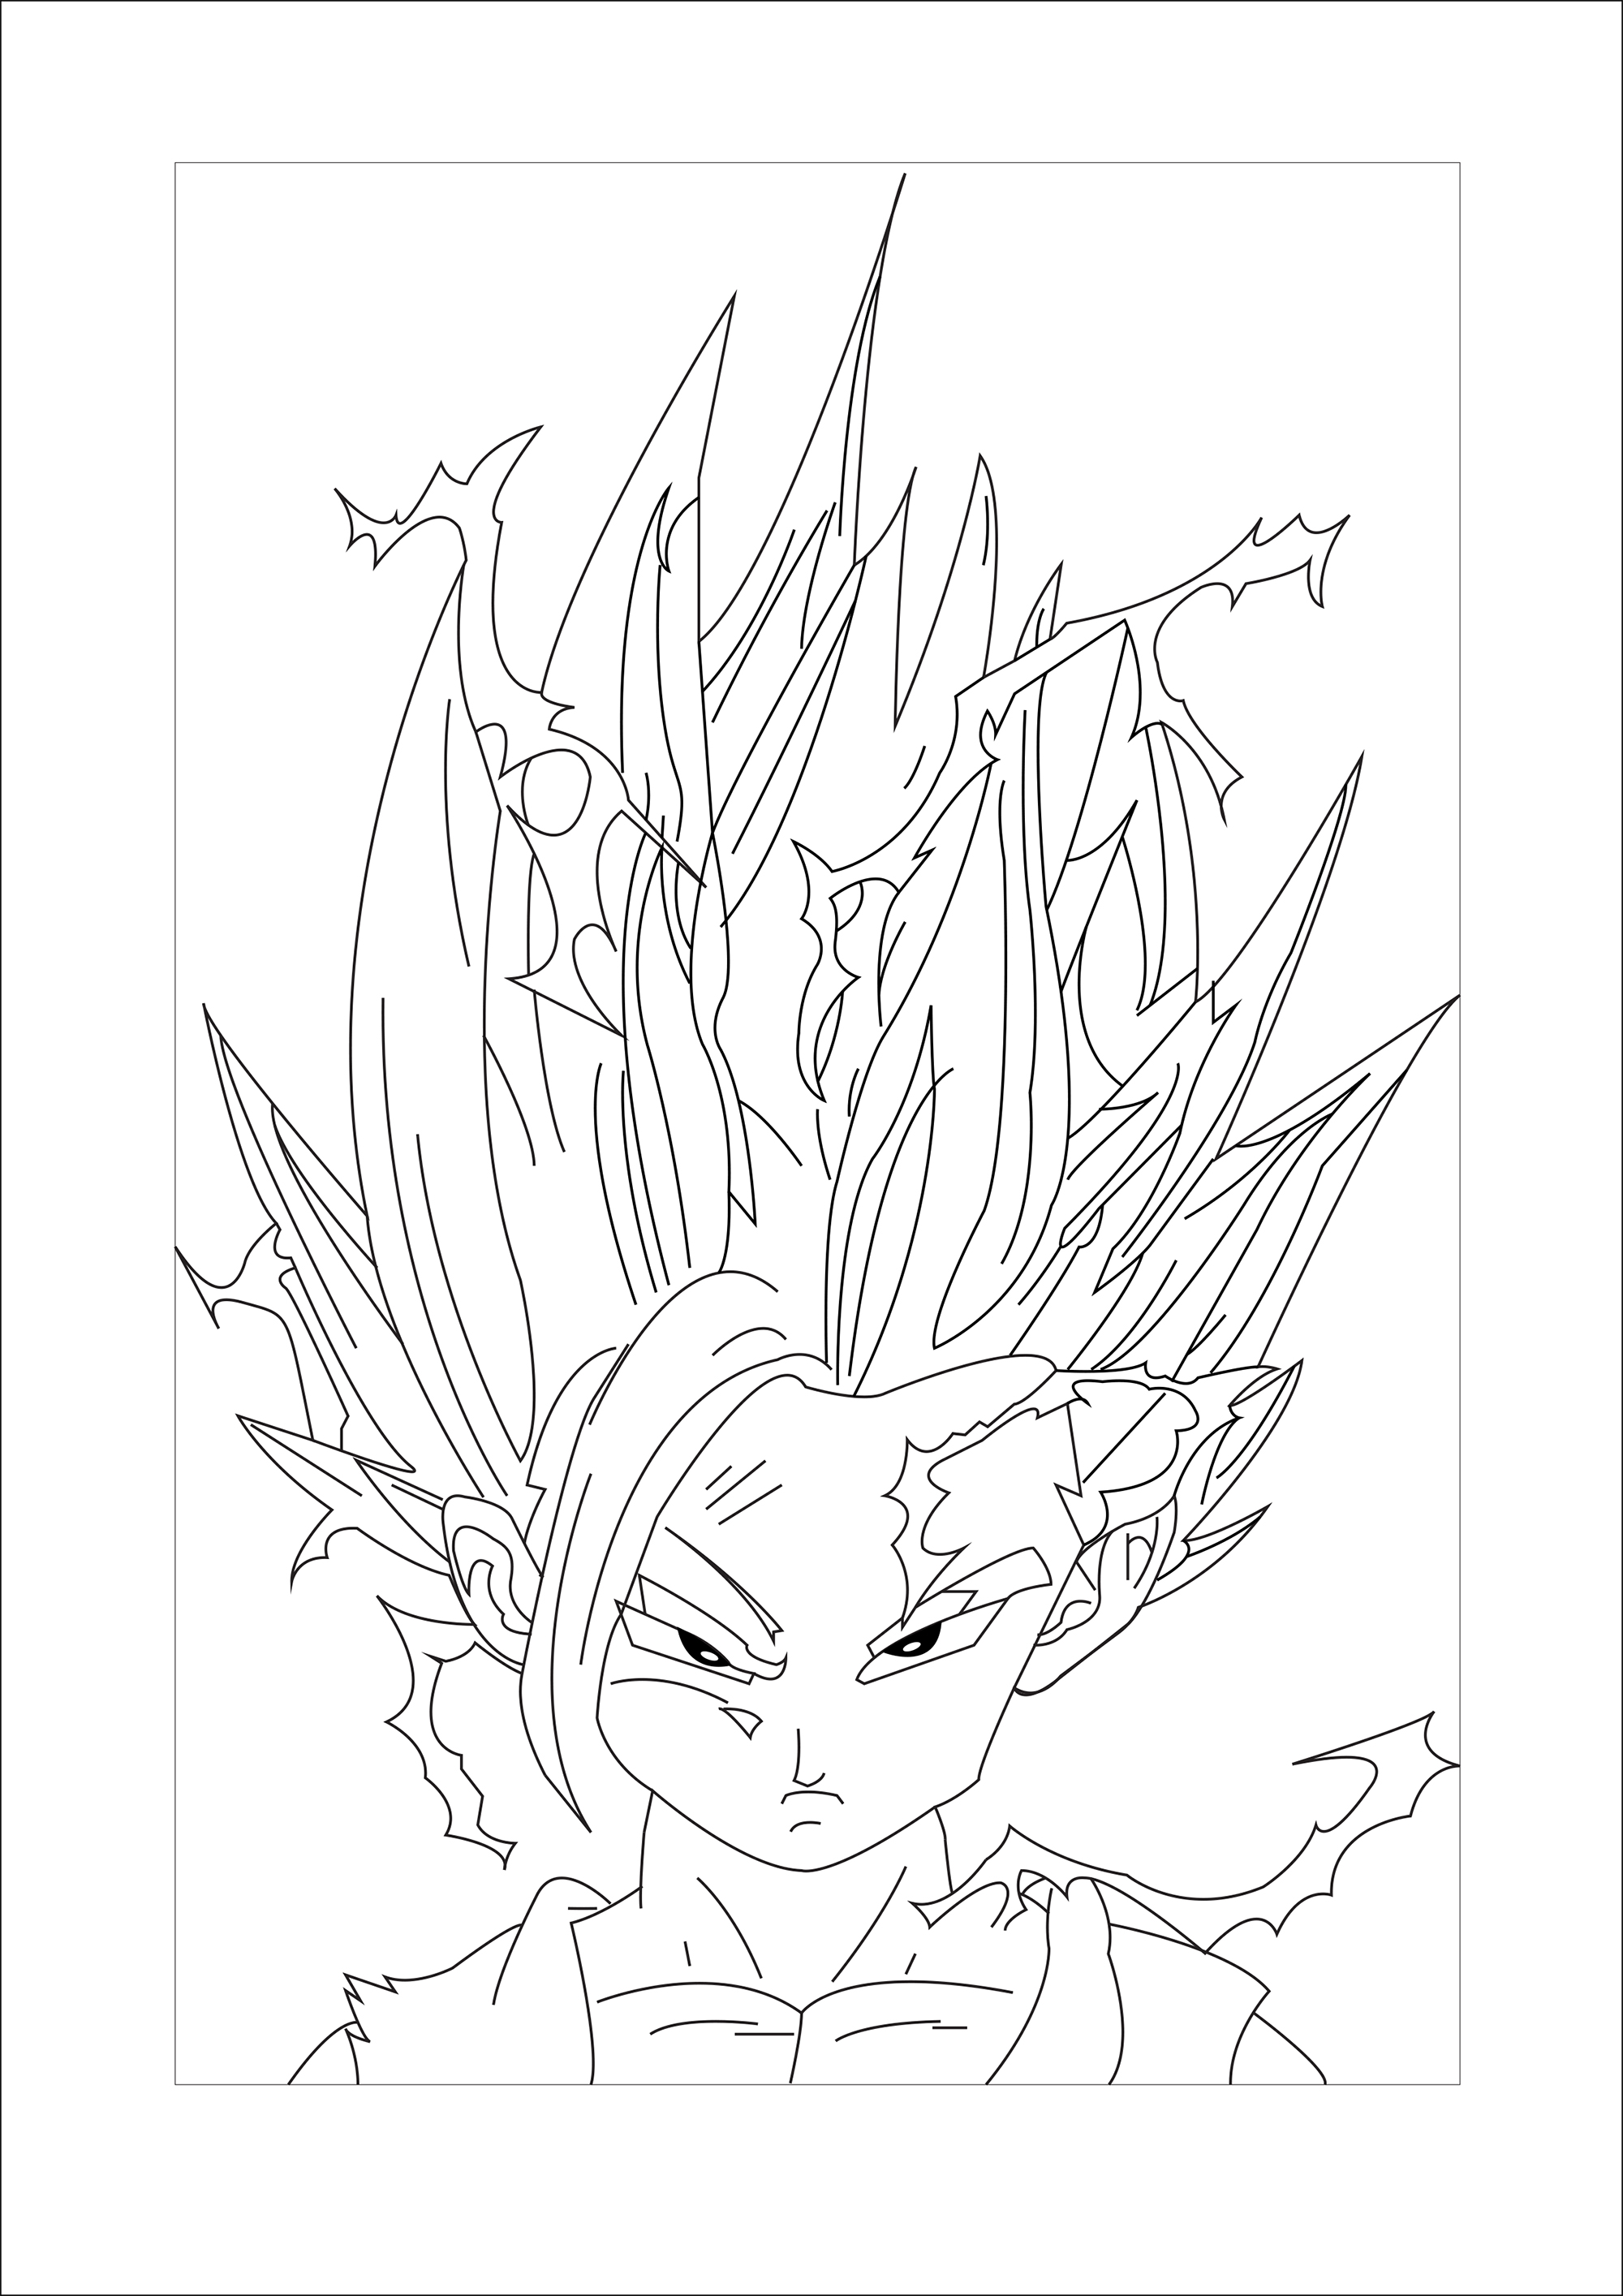 Son gohan Super Saiyajin 2 - Dragon Ball Z Kids Coloring Pages